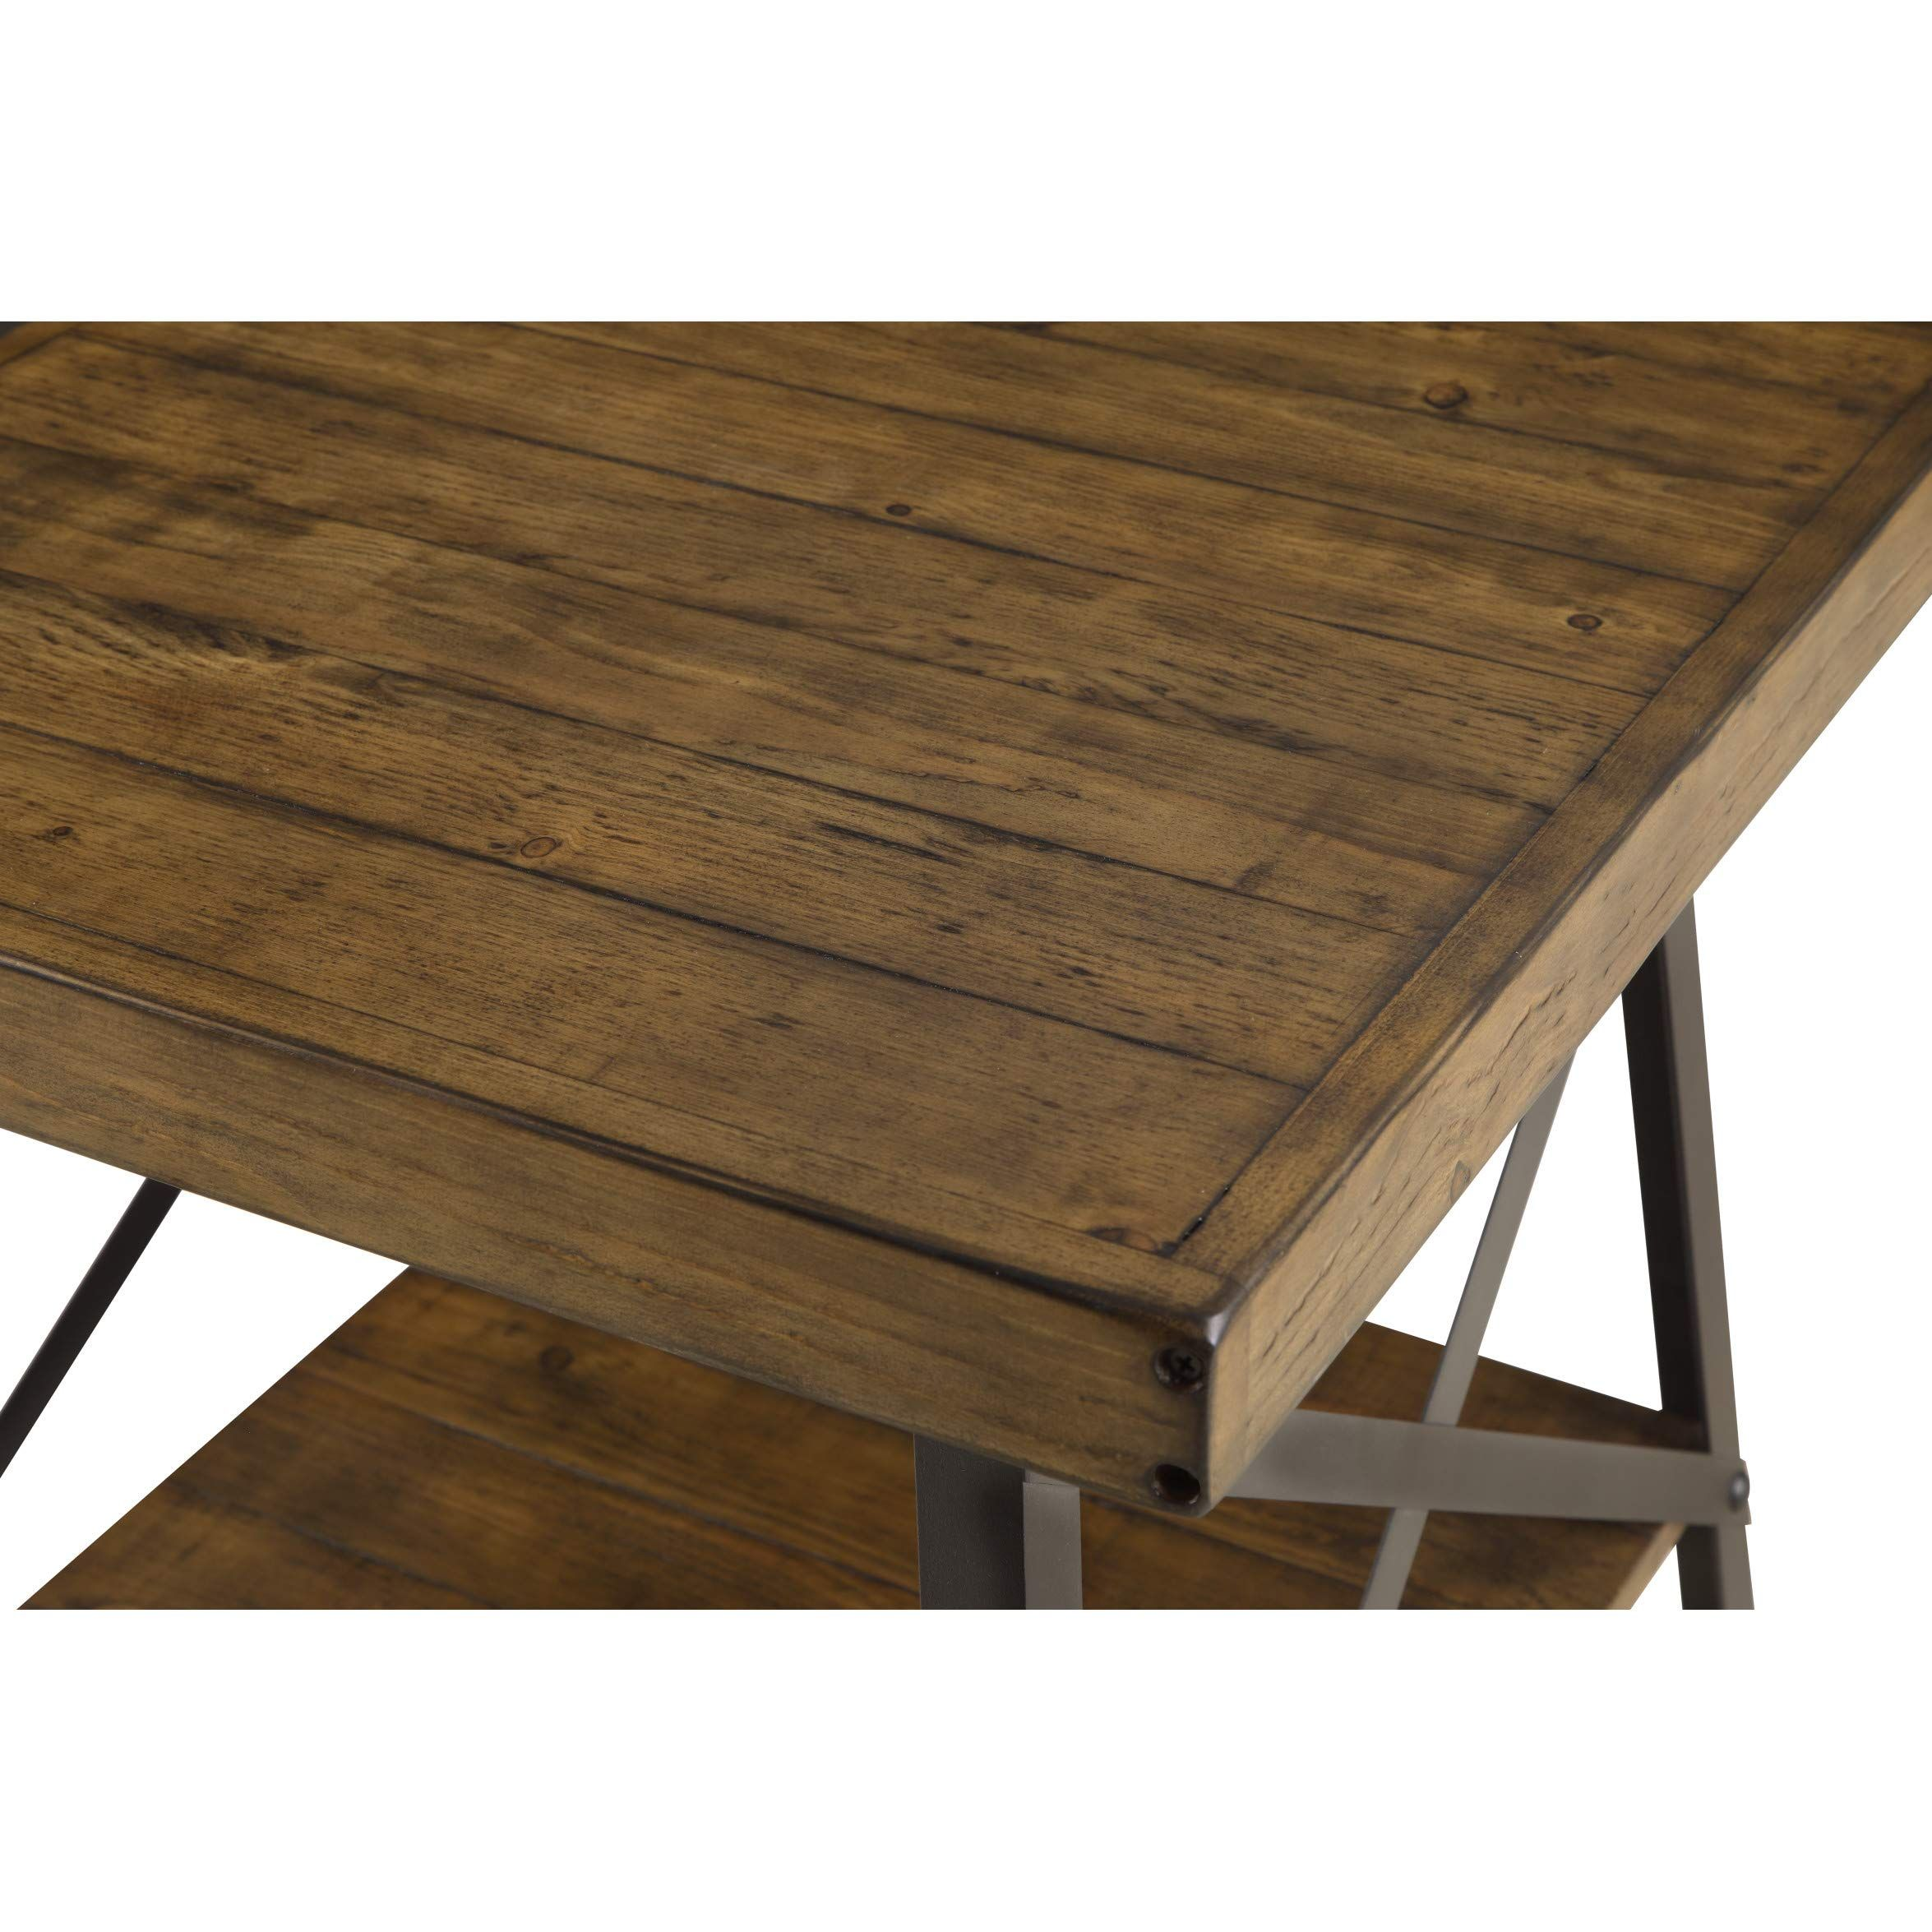 Emerald Home Chandler Rustic Wood End Table With Solid Wood Top Metal Base And Open Storage Shelf Click Image To Rev Wood End Tables Coffee Table End Tables